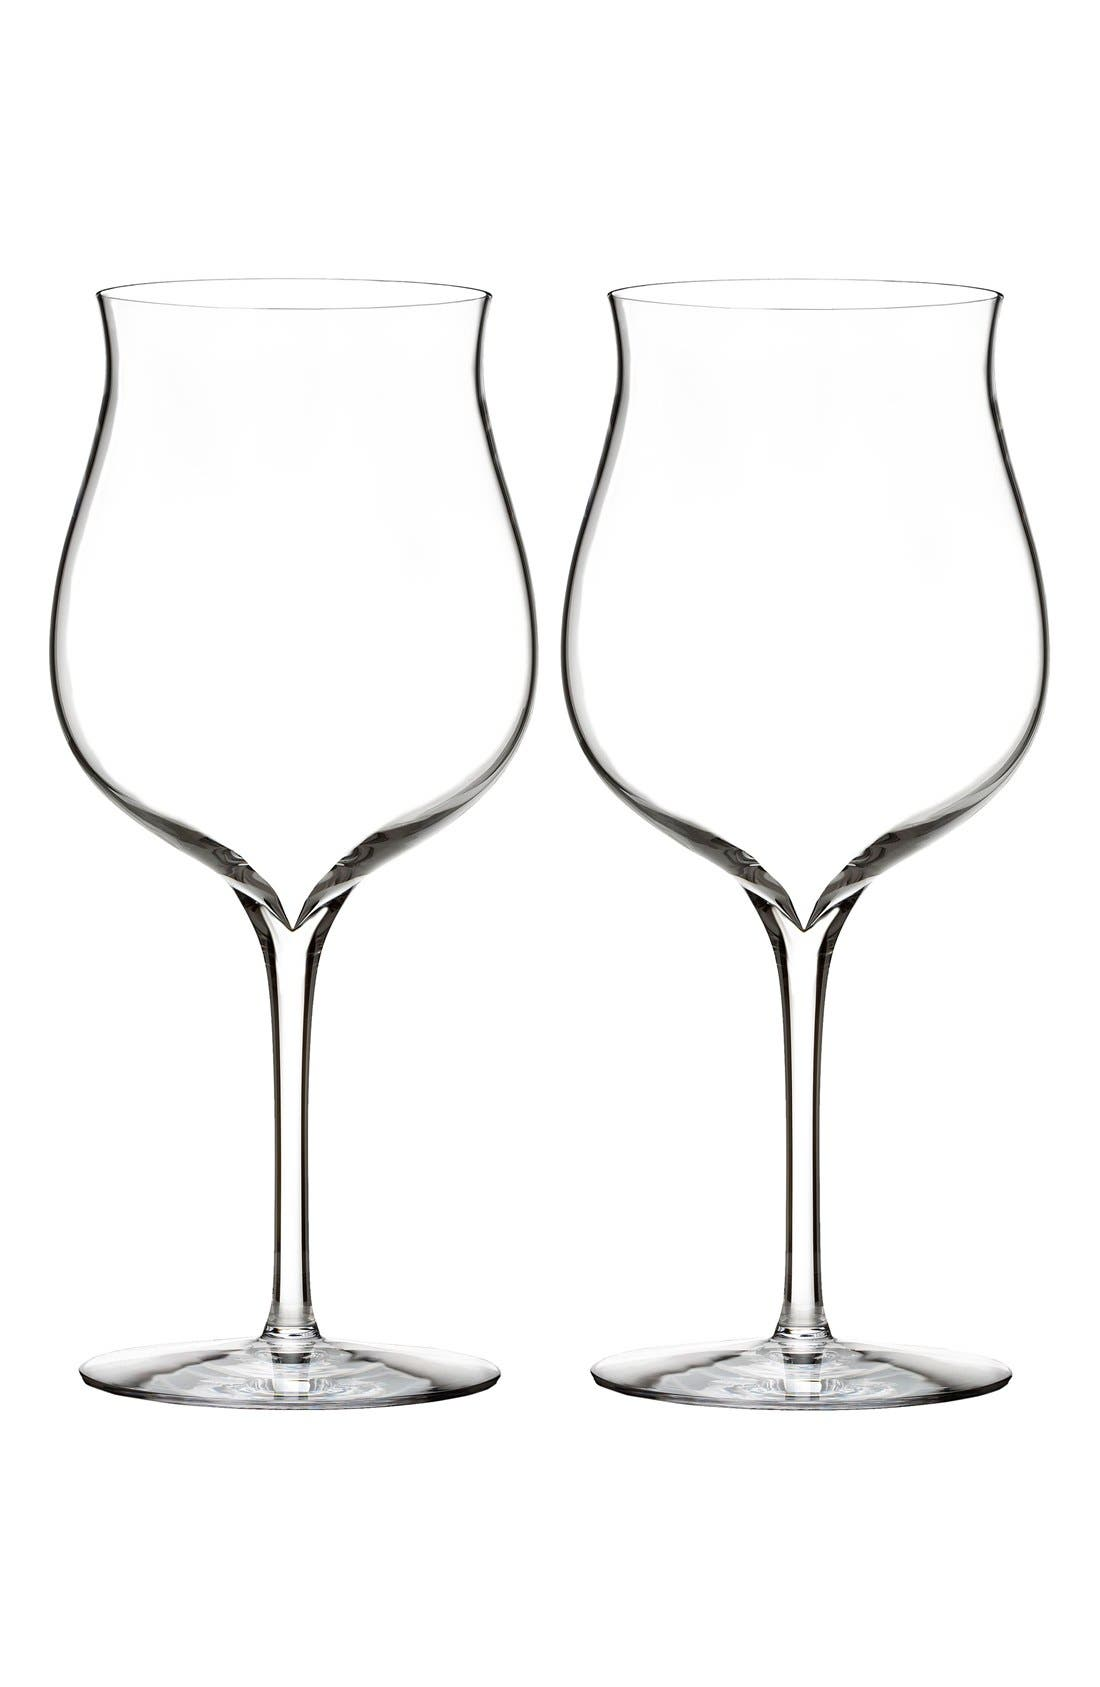 waterford elegance set of 2 fine crystal burgundy wine glasses - Waterford Crystal Wine Glasses